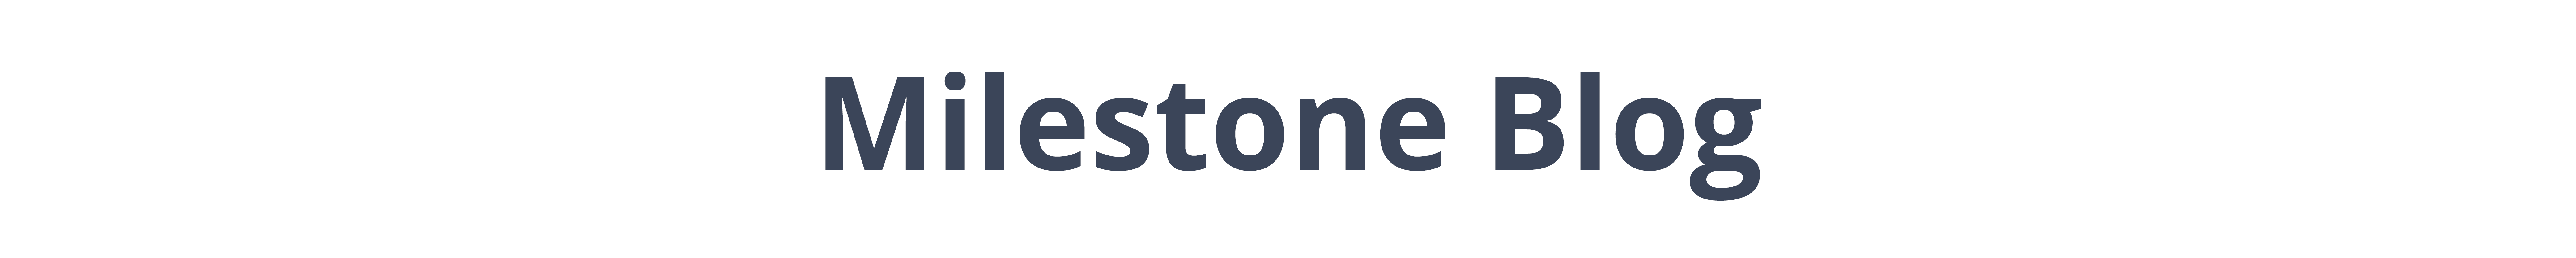 Milestone magazine logo at Cap Sante Court Retirement Community